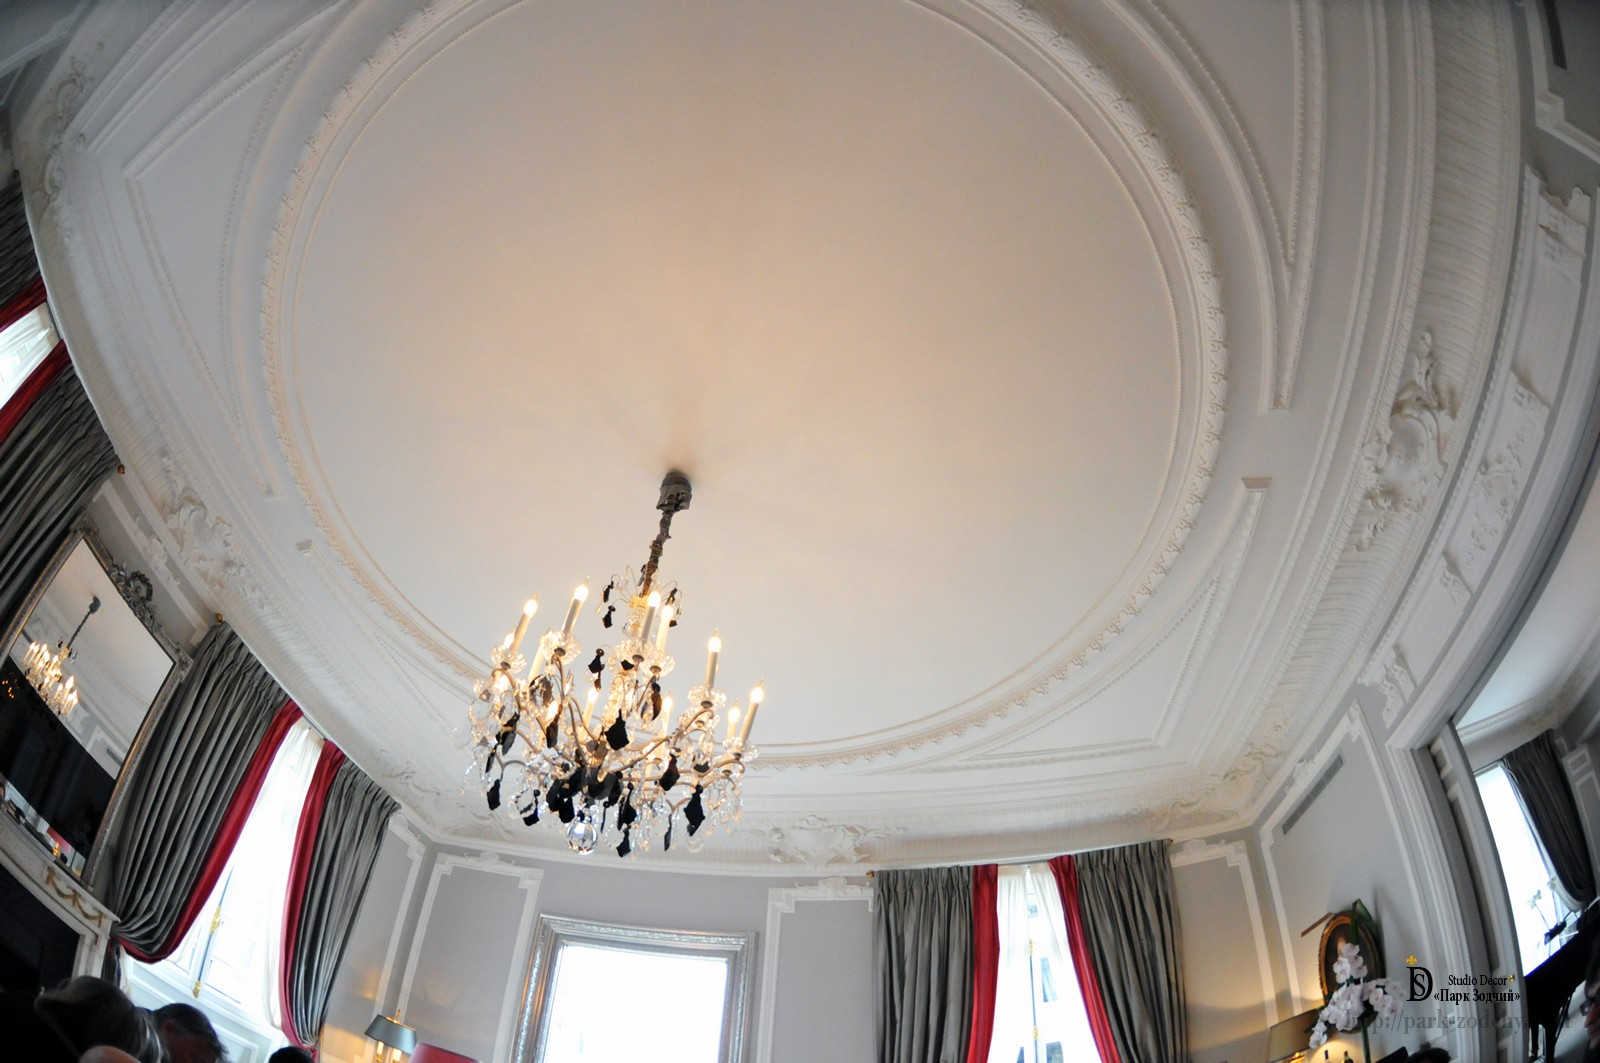 Stucco ceiling emphasized the nobility of the interior